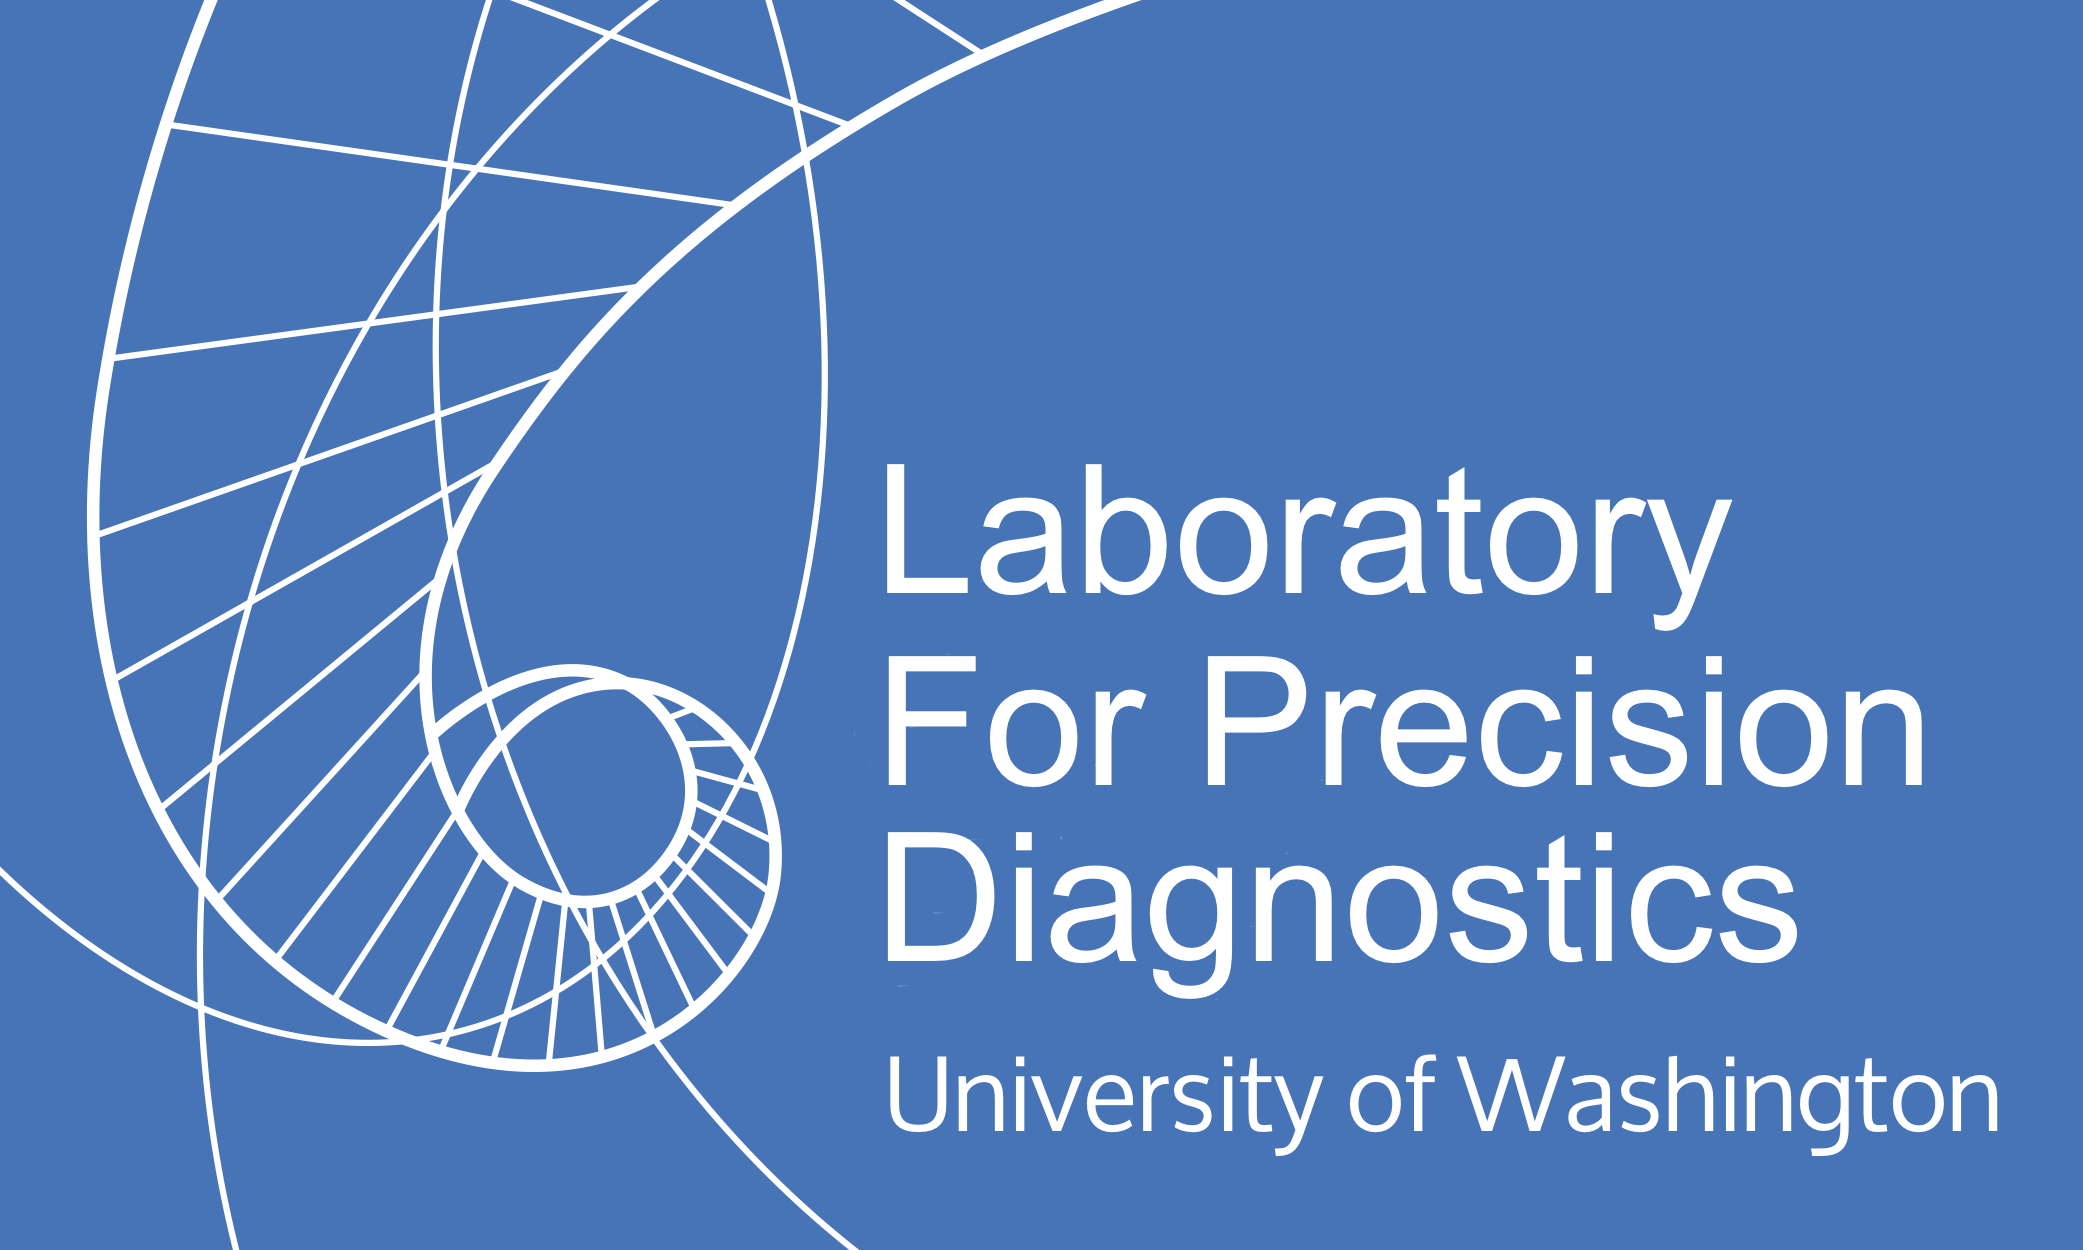 Laboratory for Precision Diagnostics